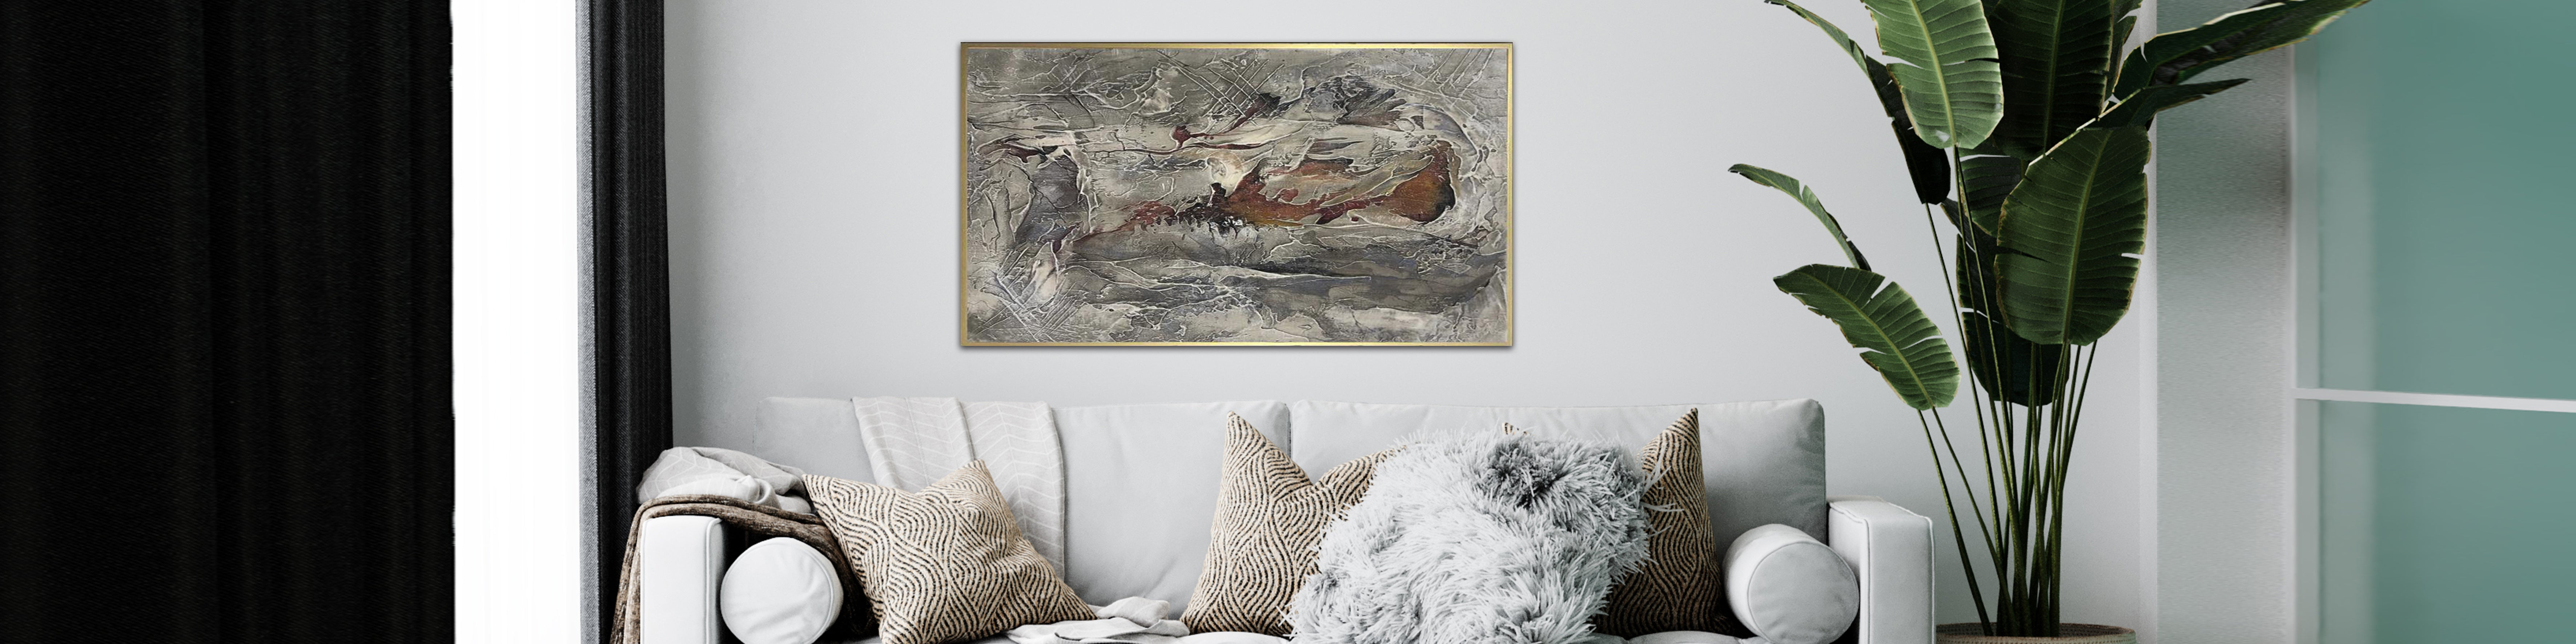 How to use landscape paintings in modern decor?